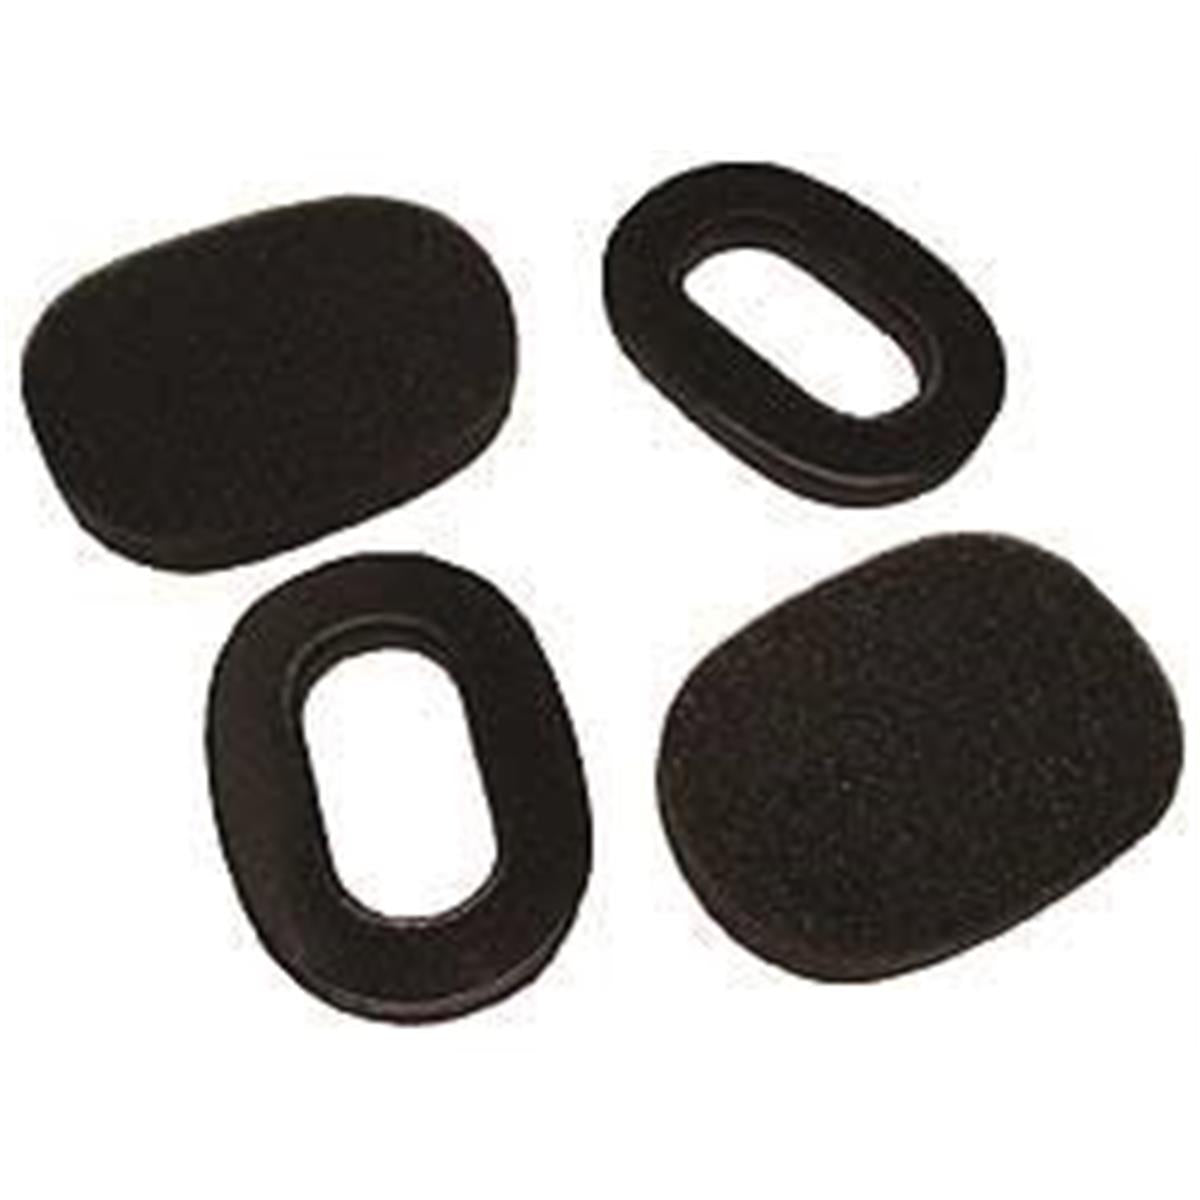 Replacement Ear Cushion Kit for Universal-fit Earmuffs